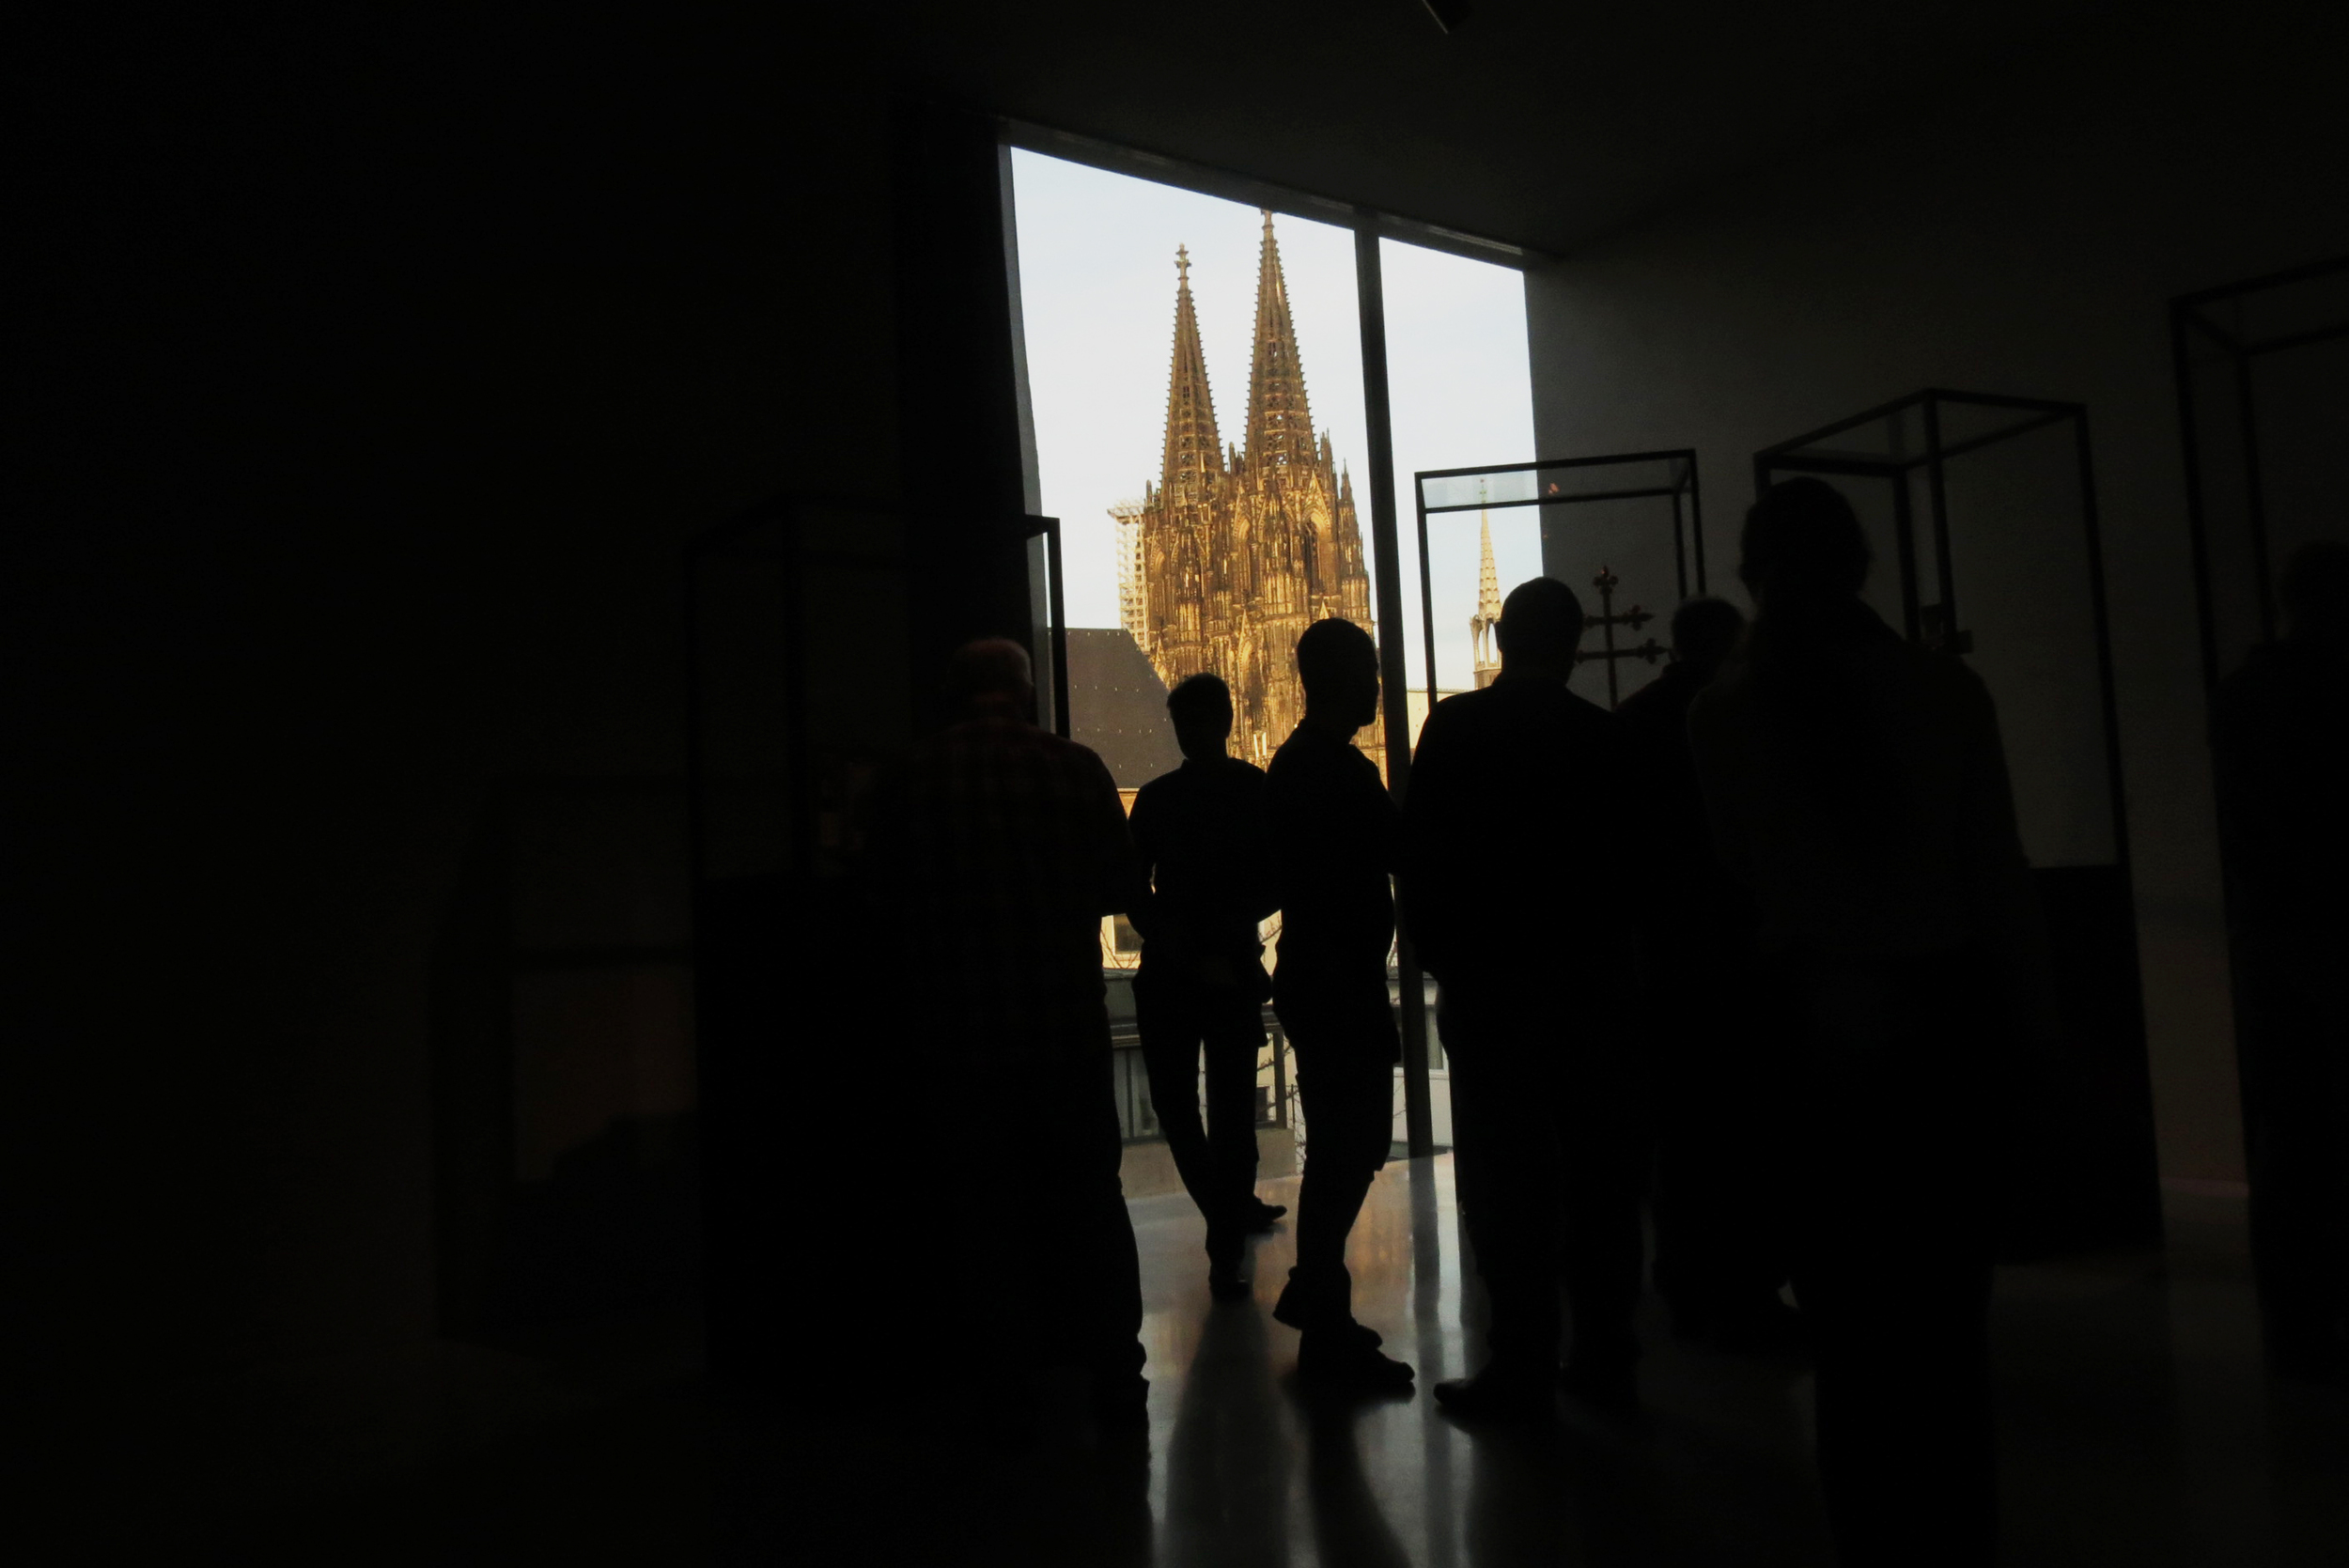 The Cologne Cathedral can be seen from the art museum entrance